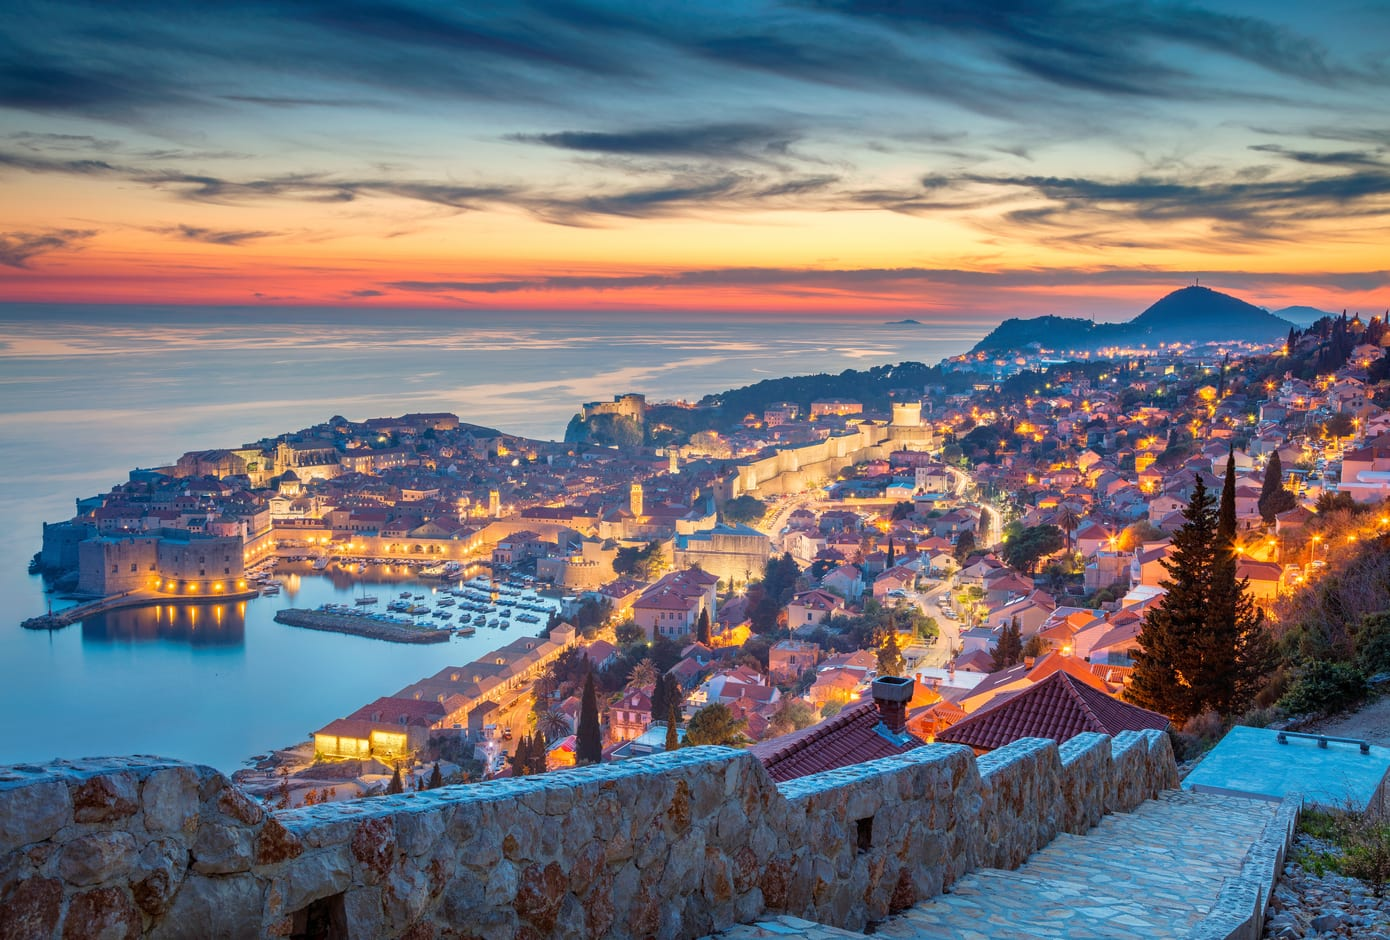 A yellow, blue, and pink sunset in Dubrovnik, Croatia.